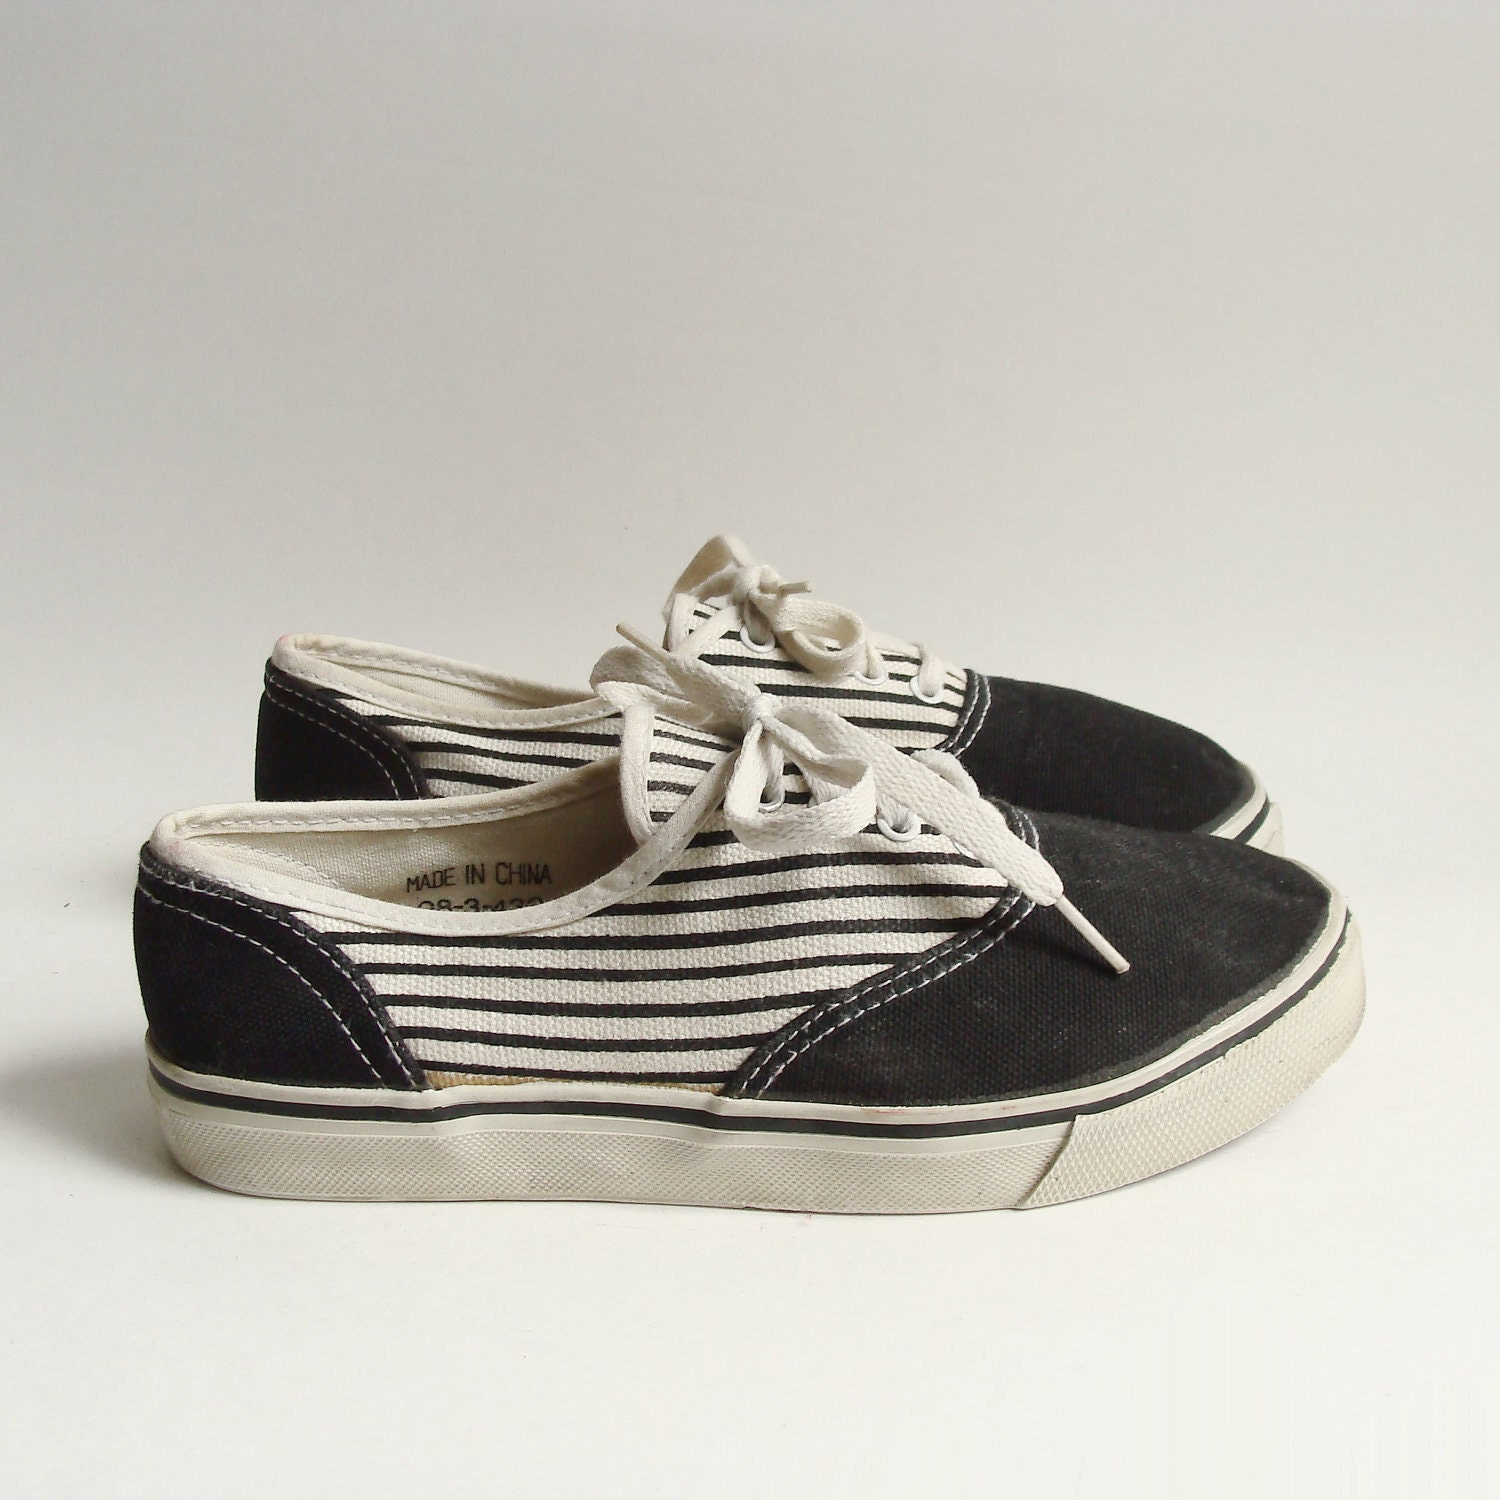 shoes 5 5 1980s 80s black canvas skate by